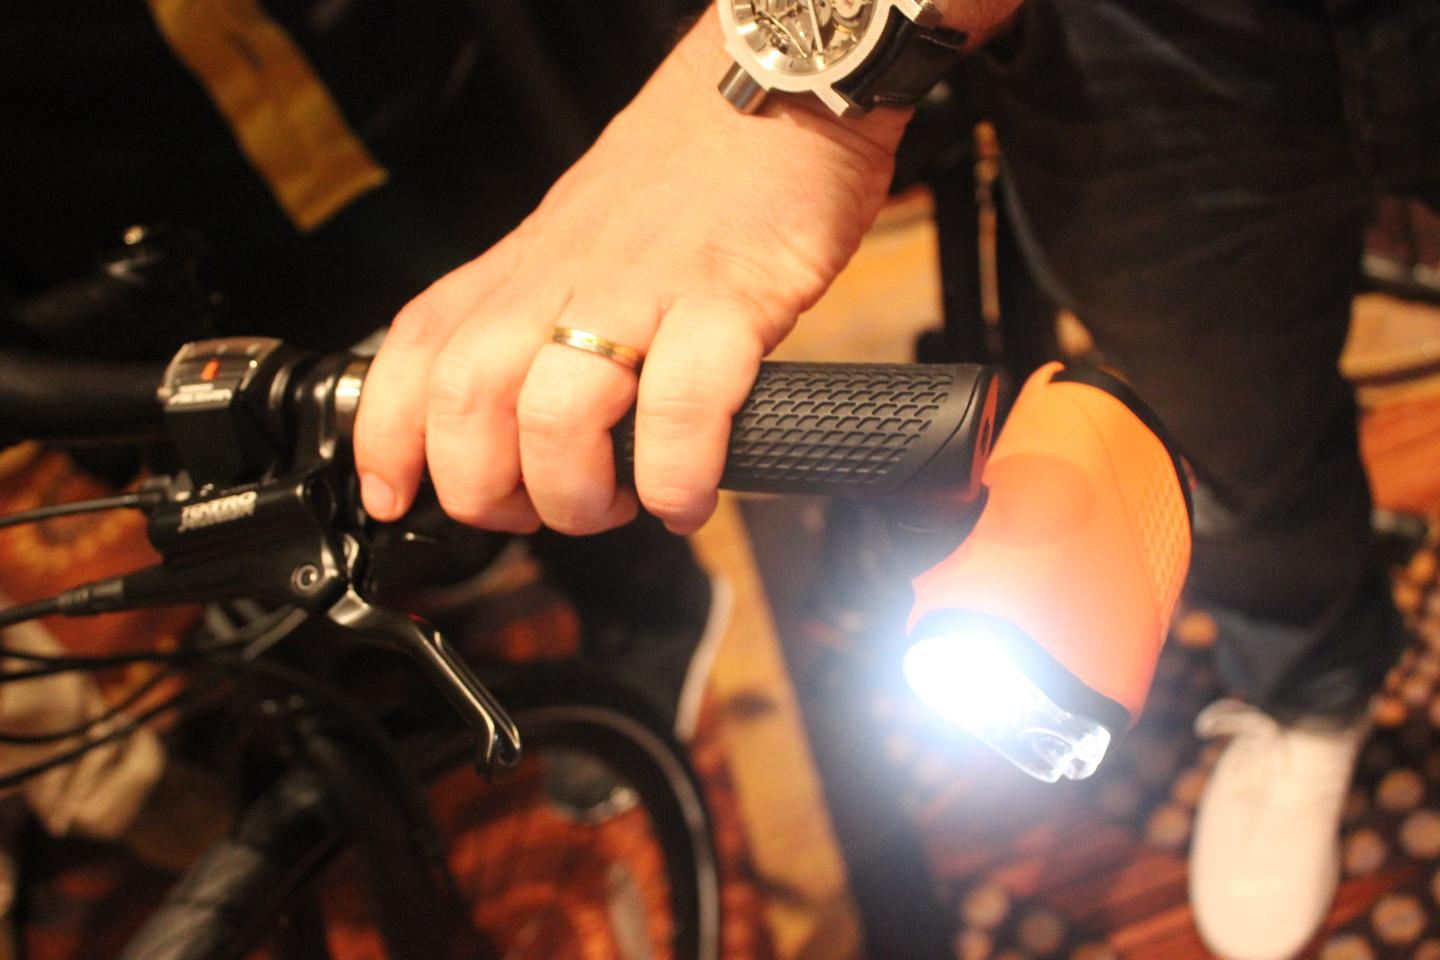 The Brightspark system recently debuted at Interbike 2016